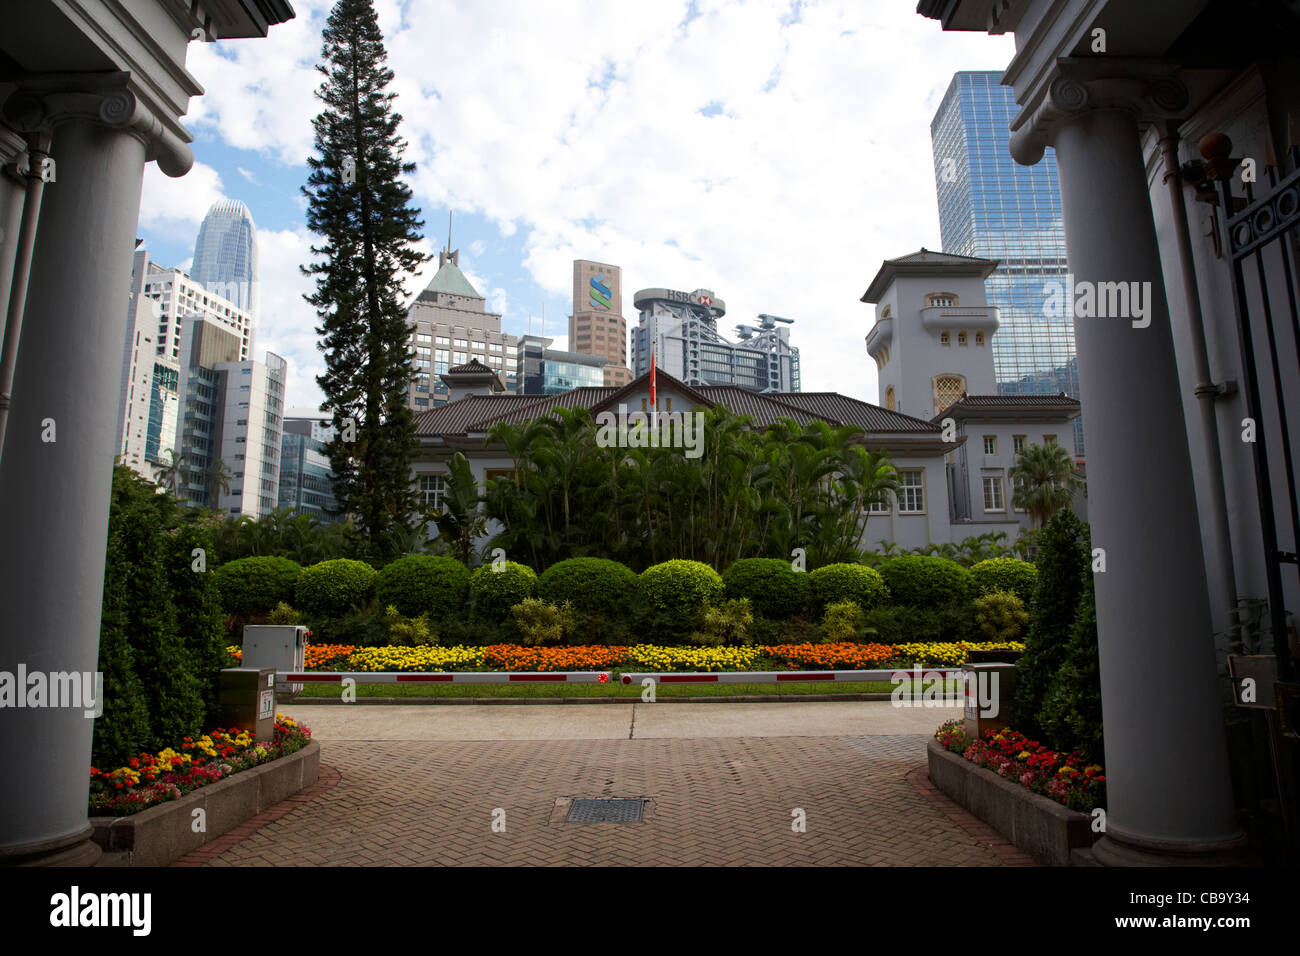 government house central hong kong hksar china - Stock Image